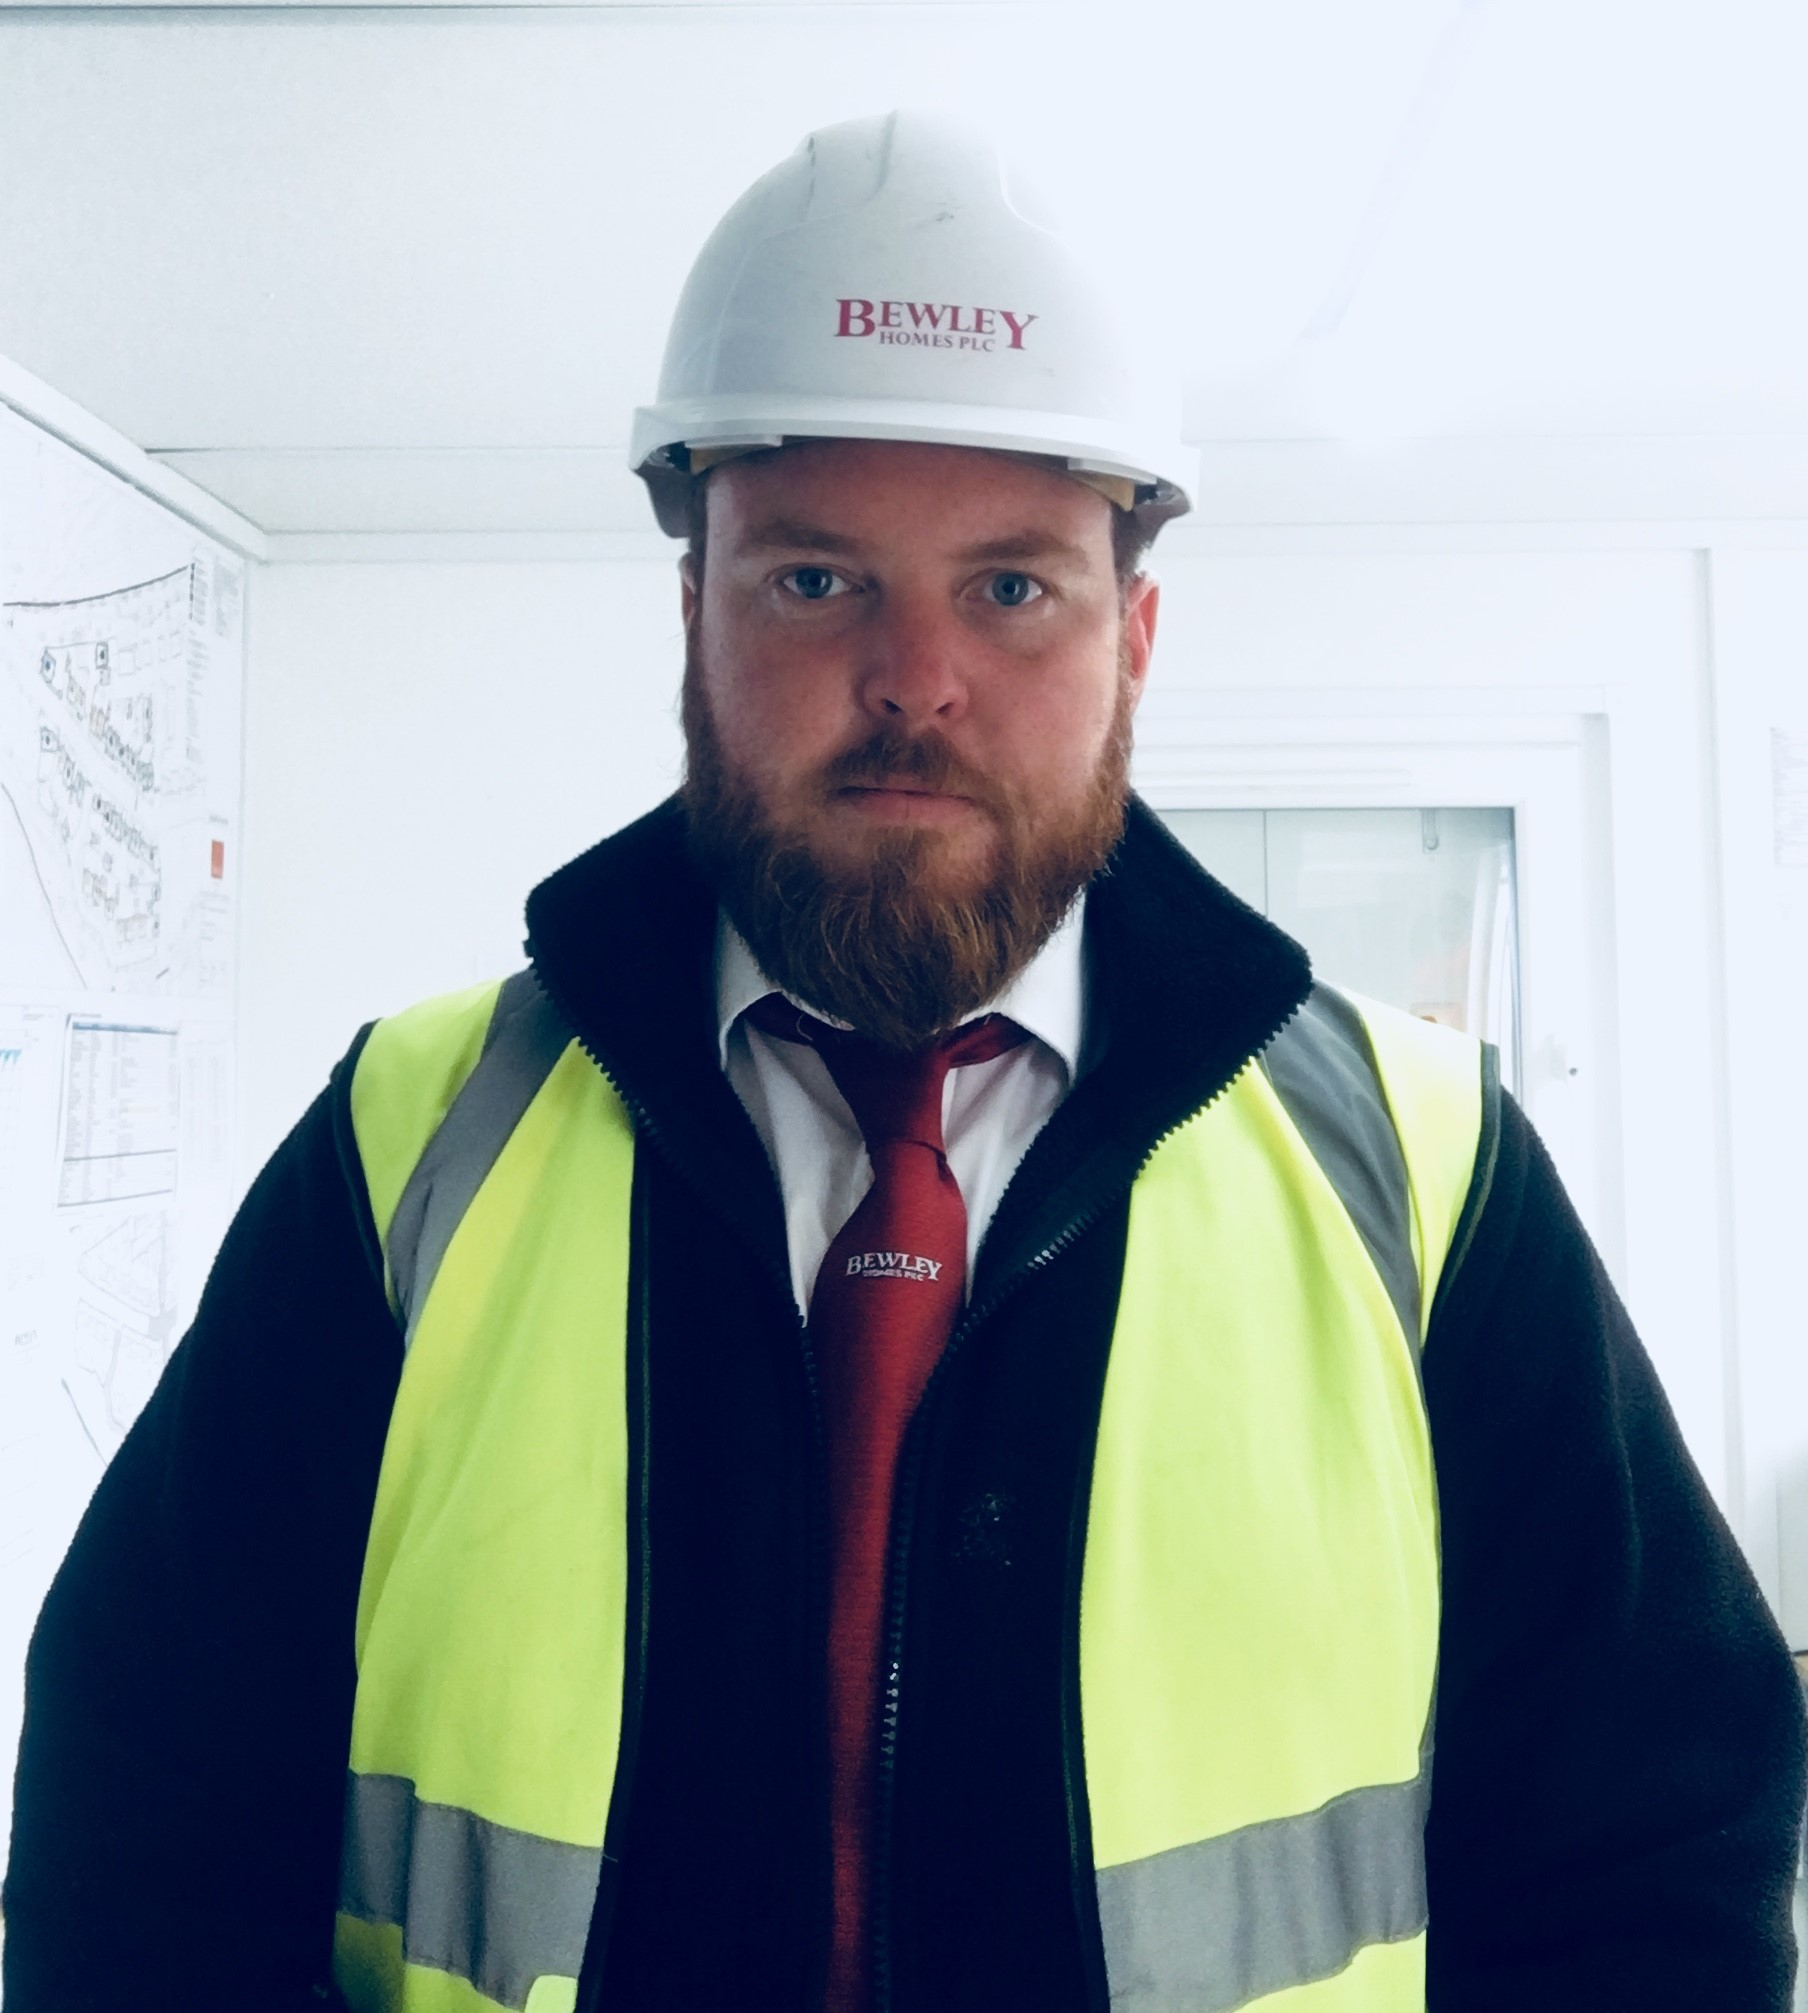 Meet Dominic Godden, Assistant Site Manager for Bewley, currently working at Ash Lodge Drive.